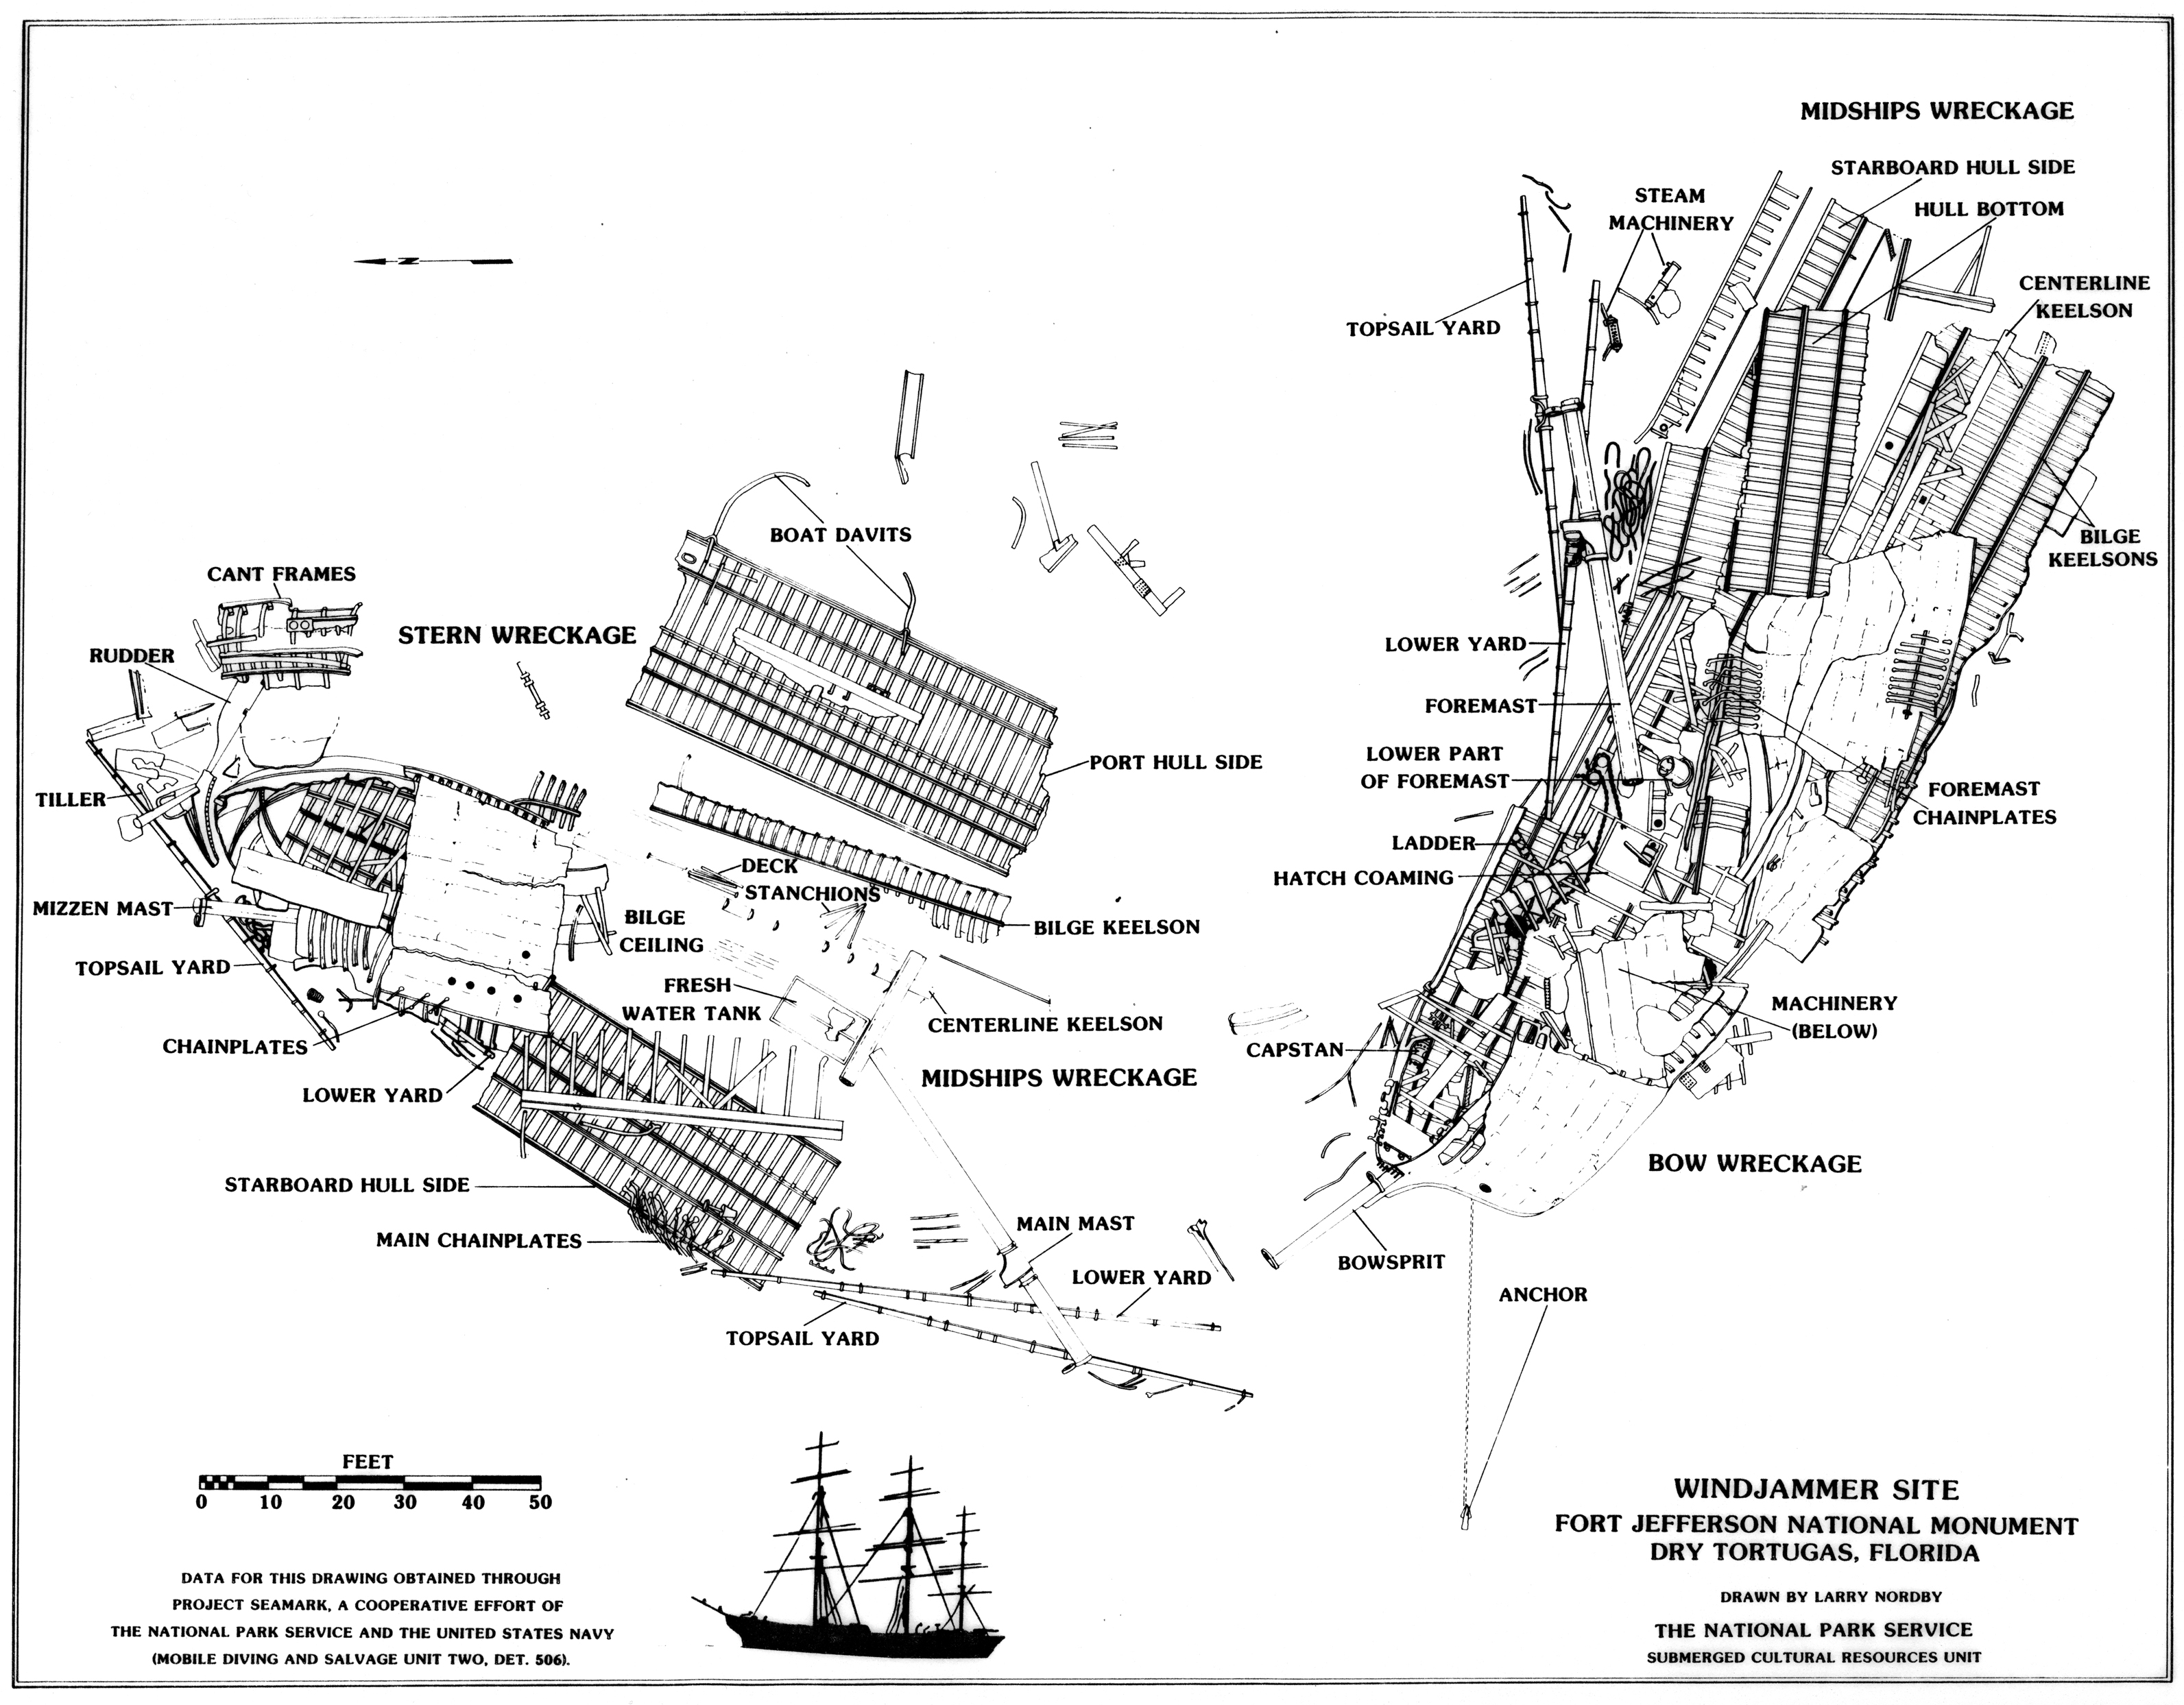 Windjammer wreck site guide